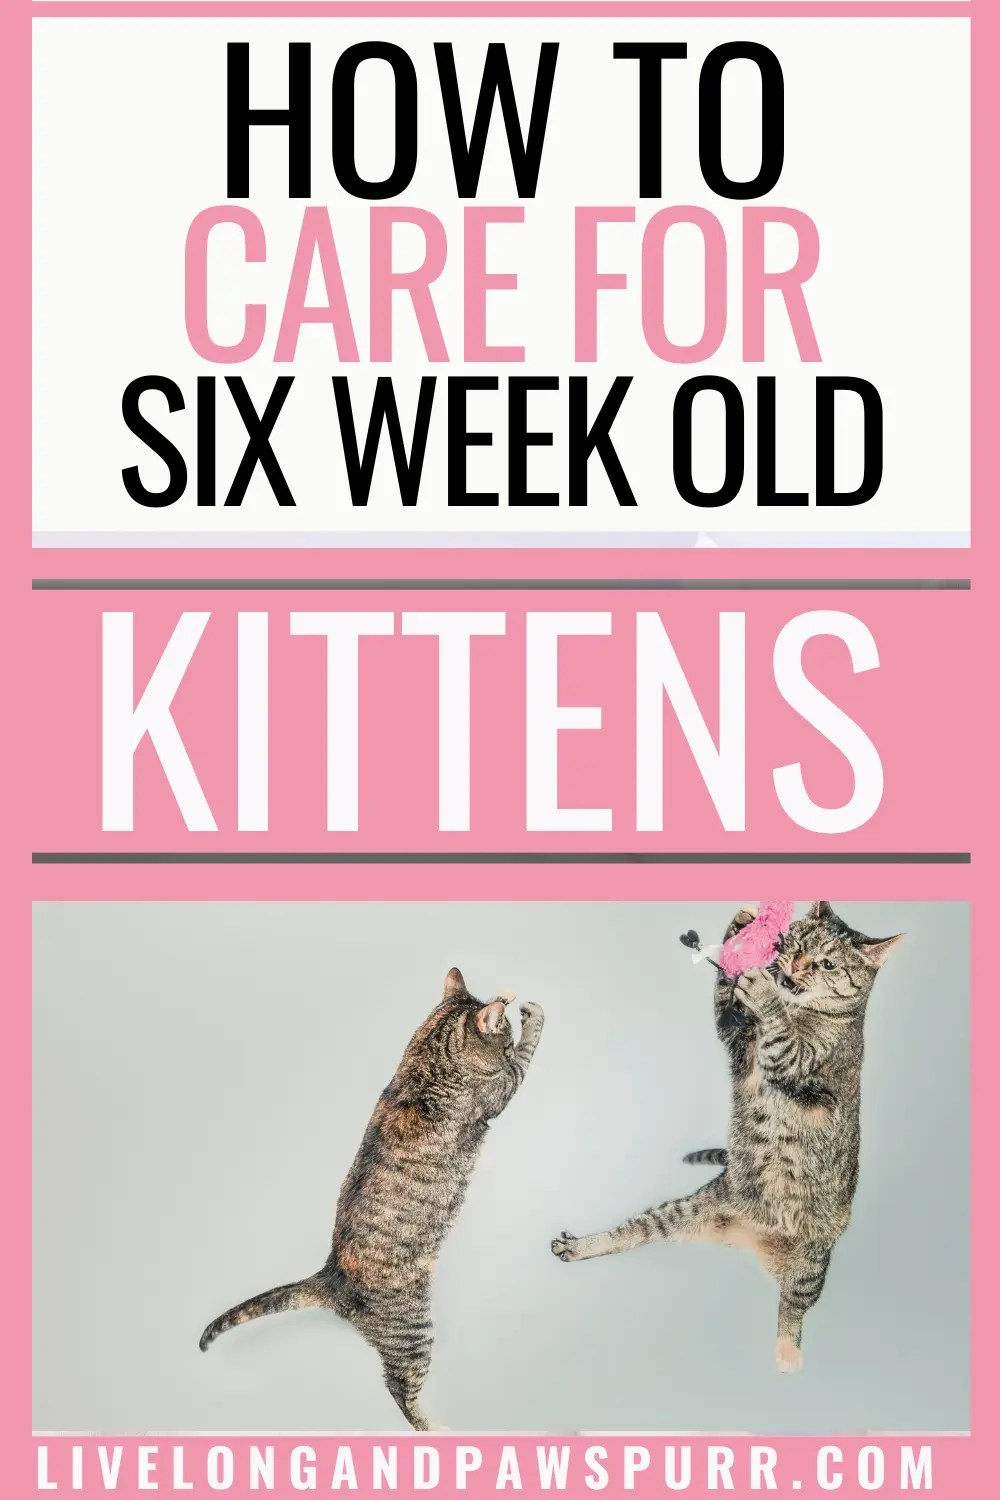 The Complete Guide To 6 Week Old Kittens Live Long And Pawspurr